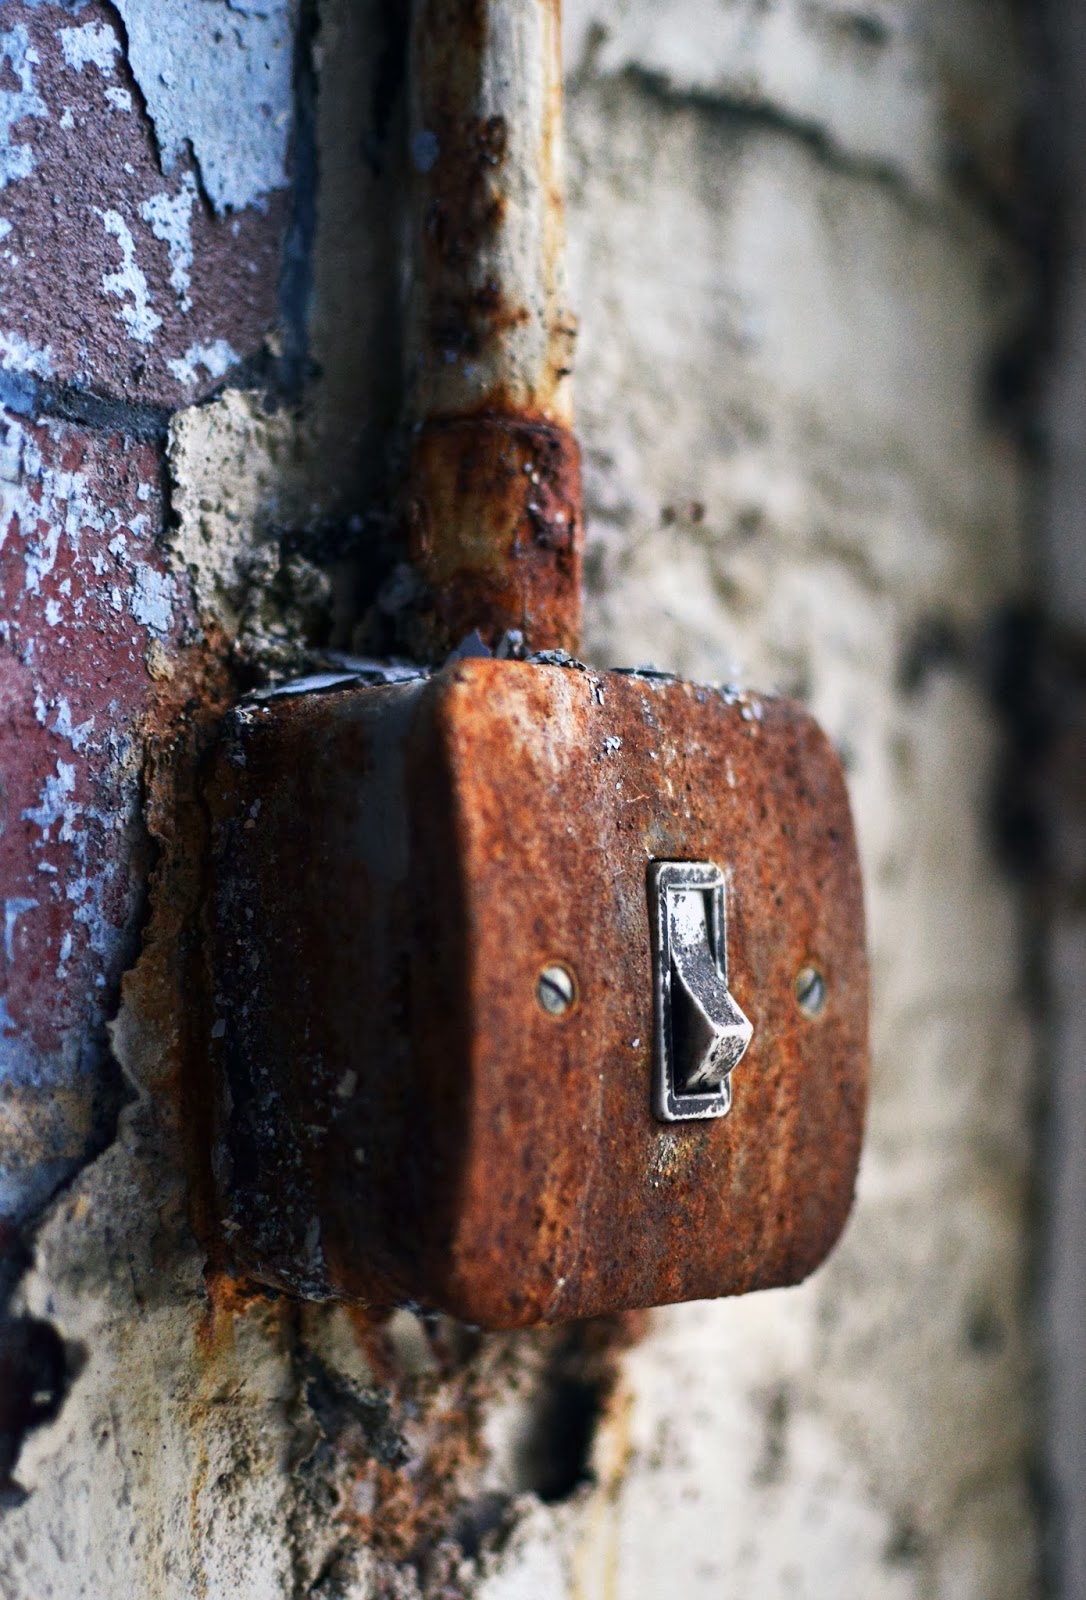 fothergill and harvey, rock nook mill, littleborough, urbex, explore, urban, derp, manchester, mill, factory, industrial, fittings, light switch, rust, paint, peeling, derelict, dereliction, decay, abandoned, ghost, adventure, danger